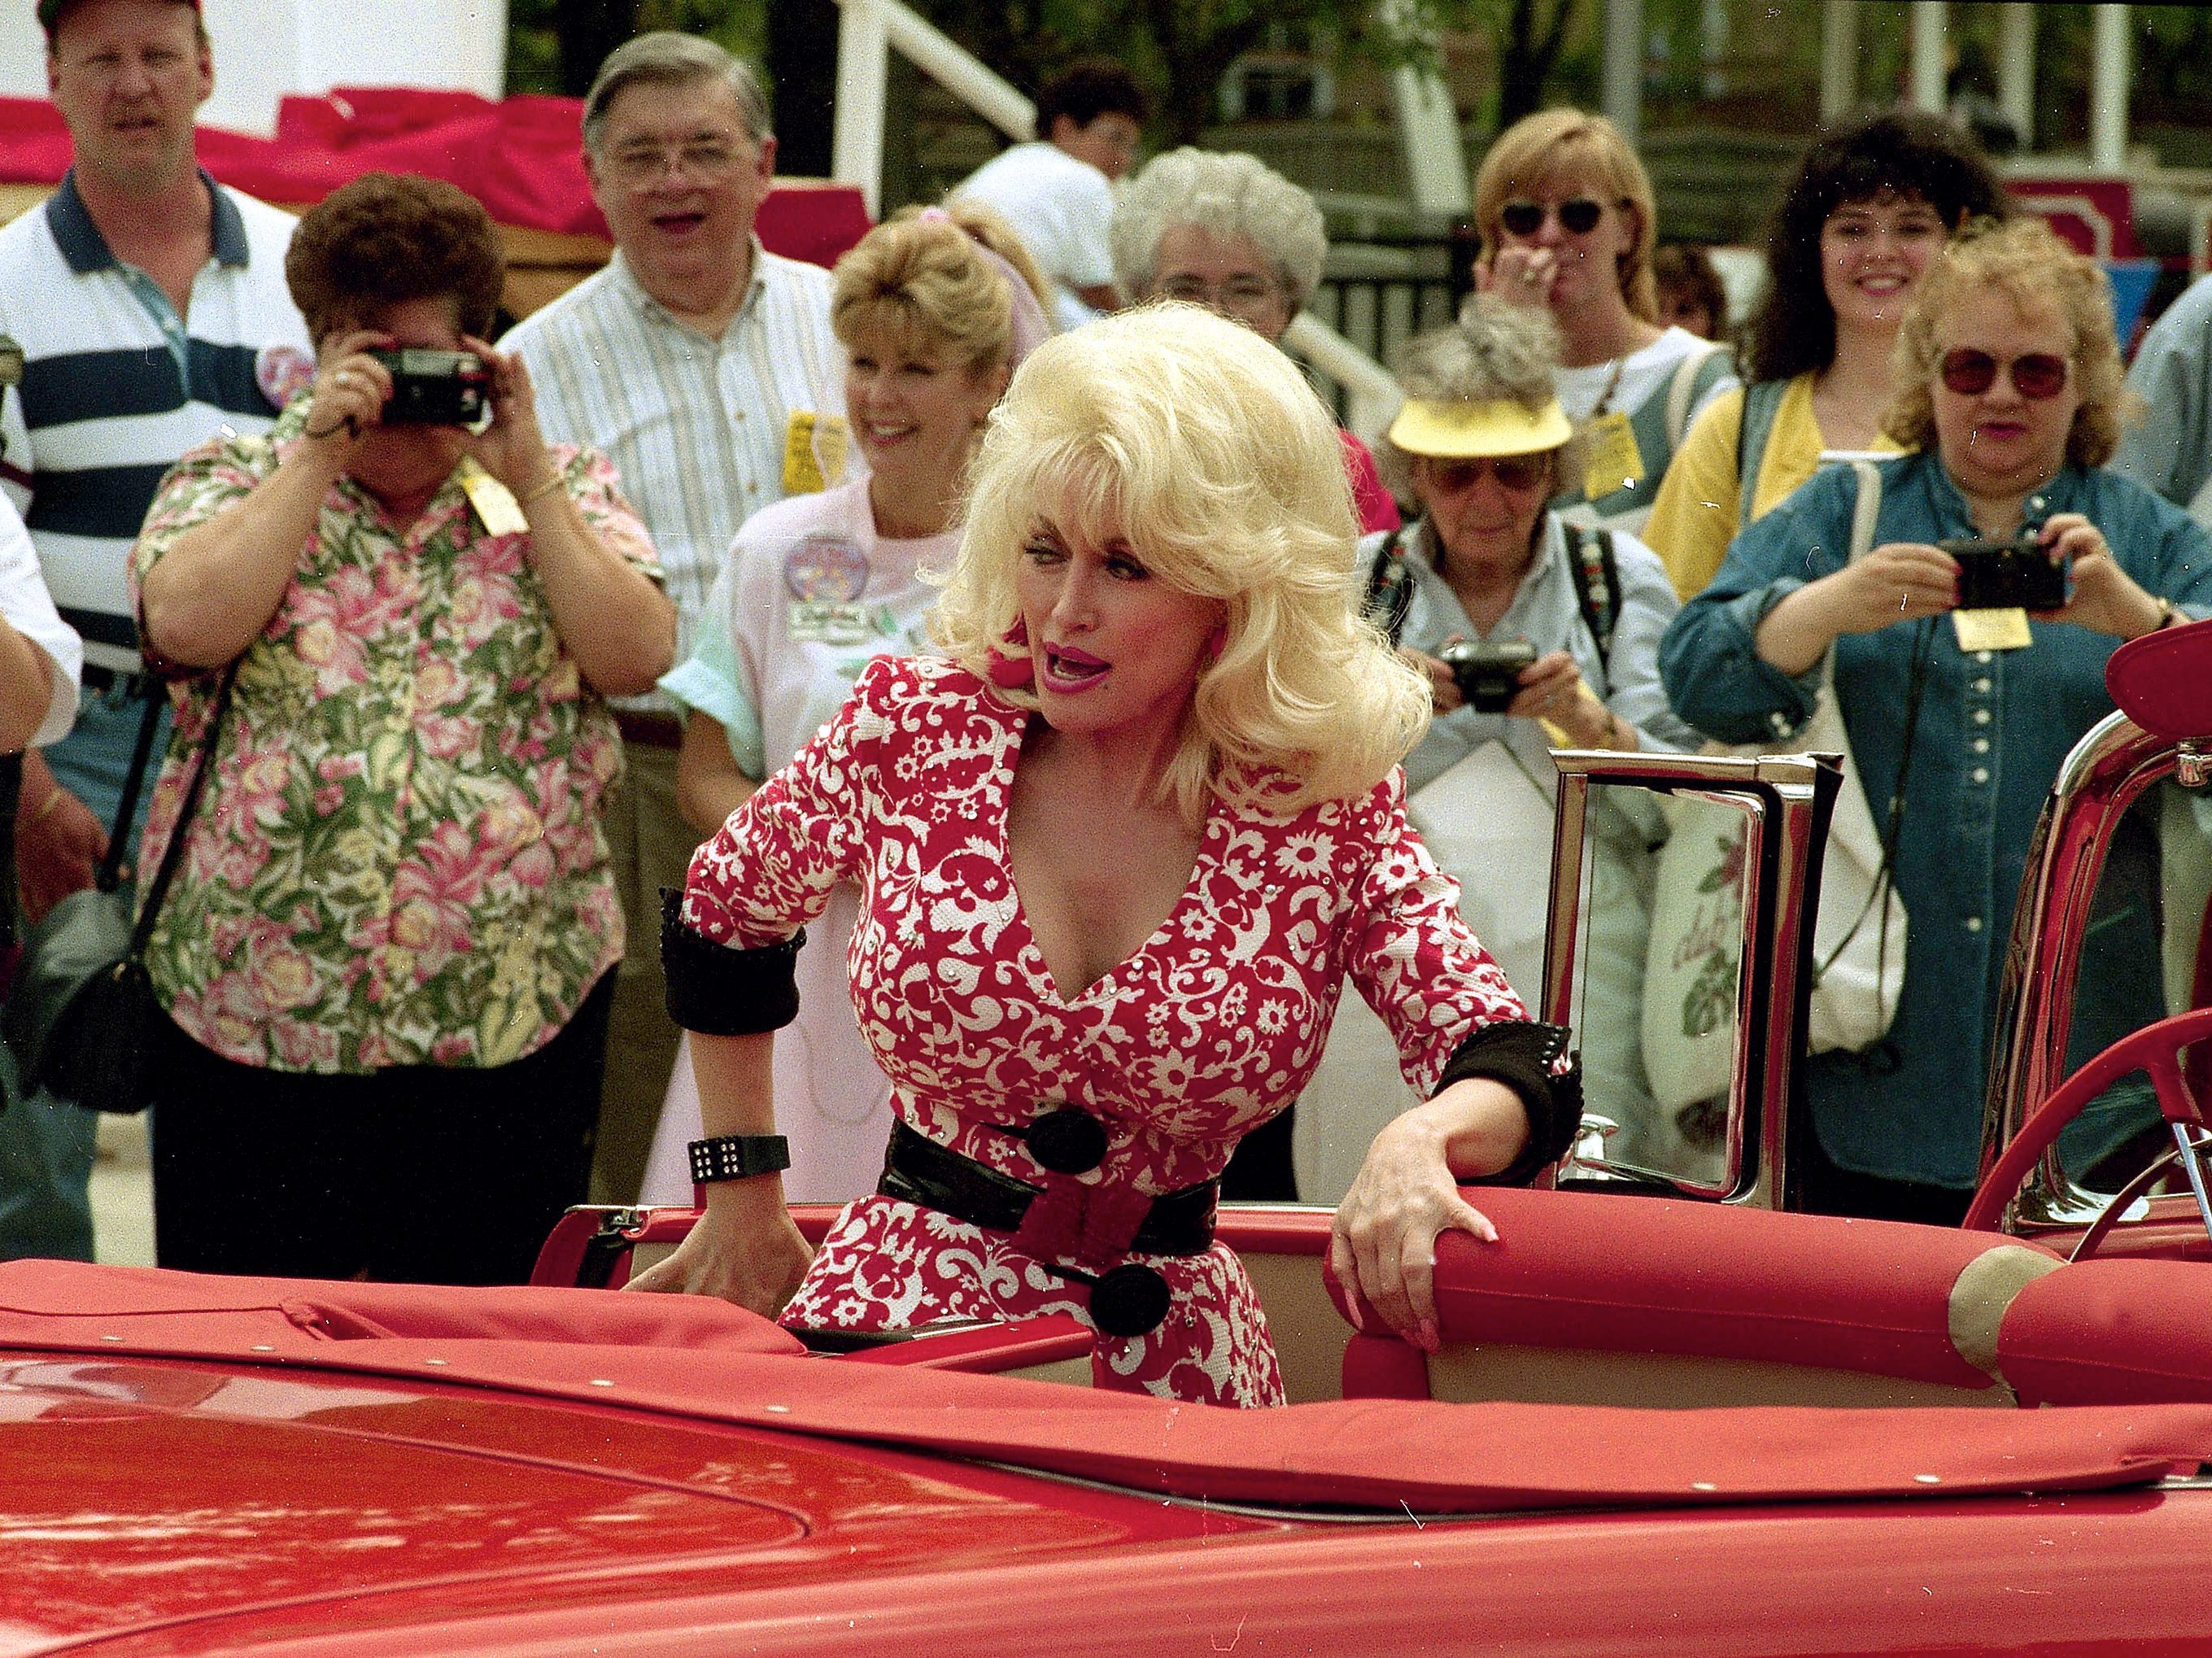 Dolly Parton climbs into a 1955 Chevrolet convertible at the season opening of Dollywood on April 21, 1995.